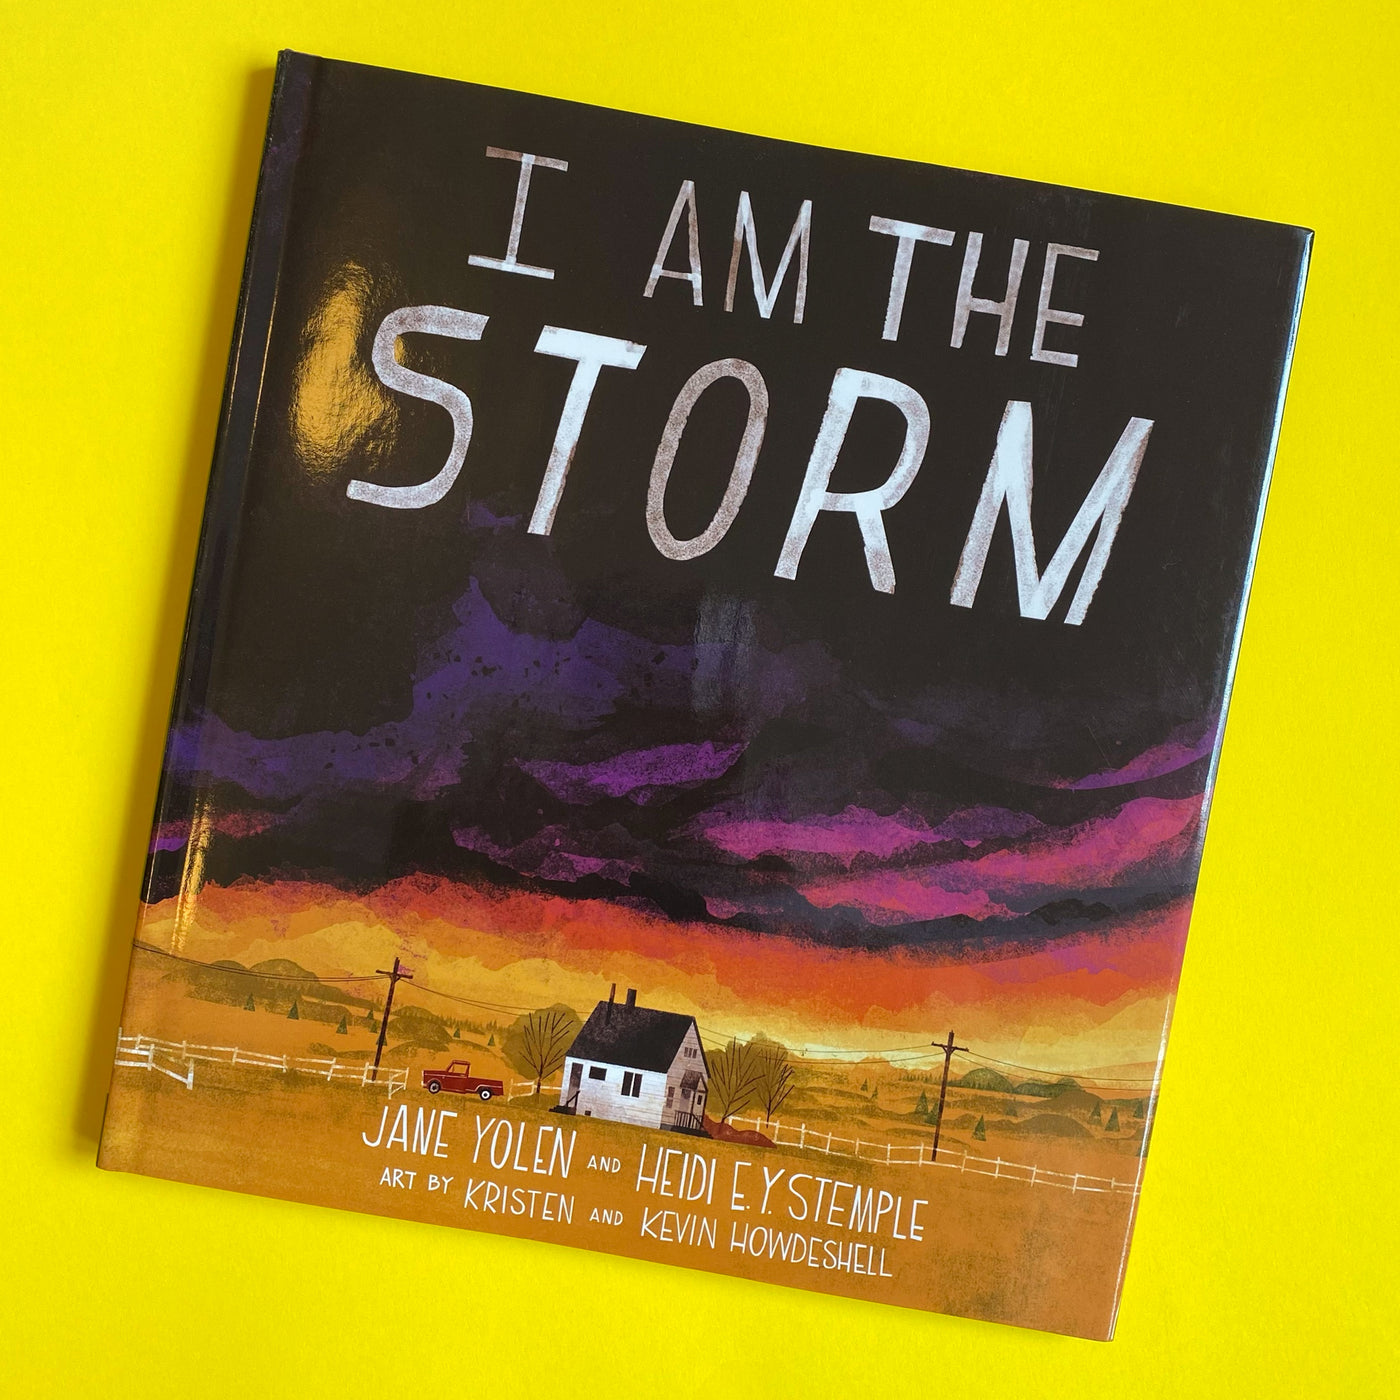 I Am the Storm by Jane Yolen and Heidi E. Y. Stemple